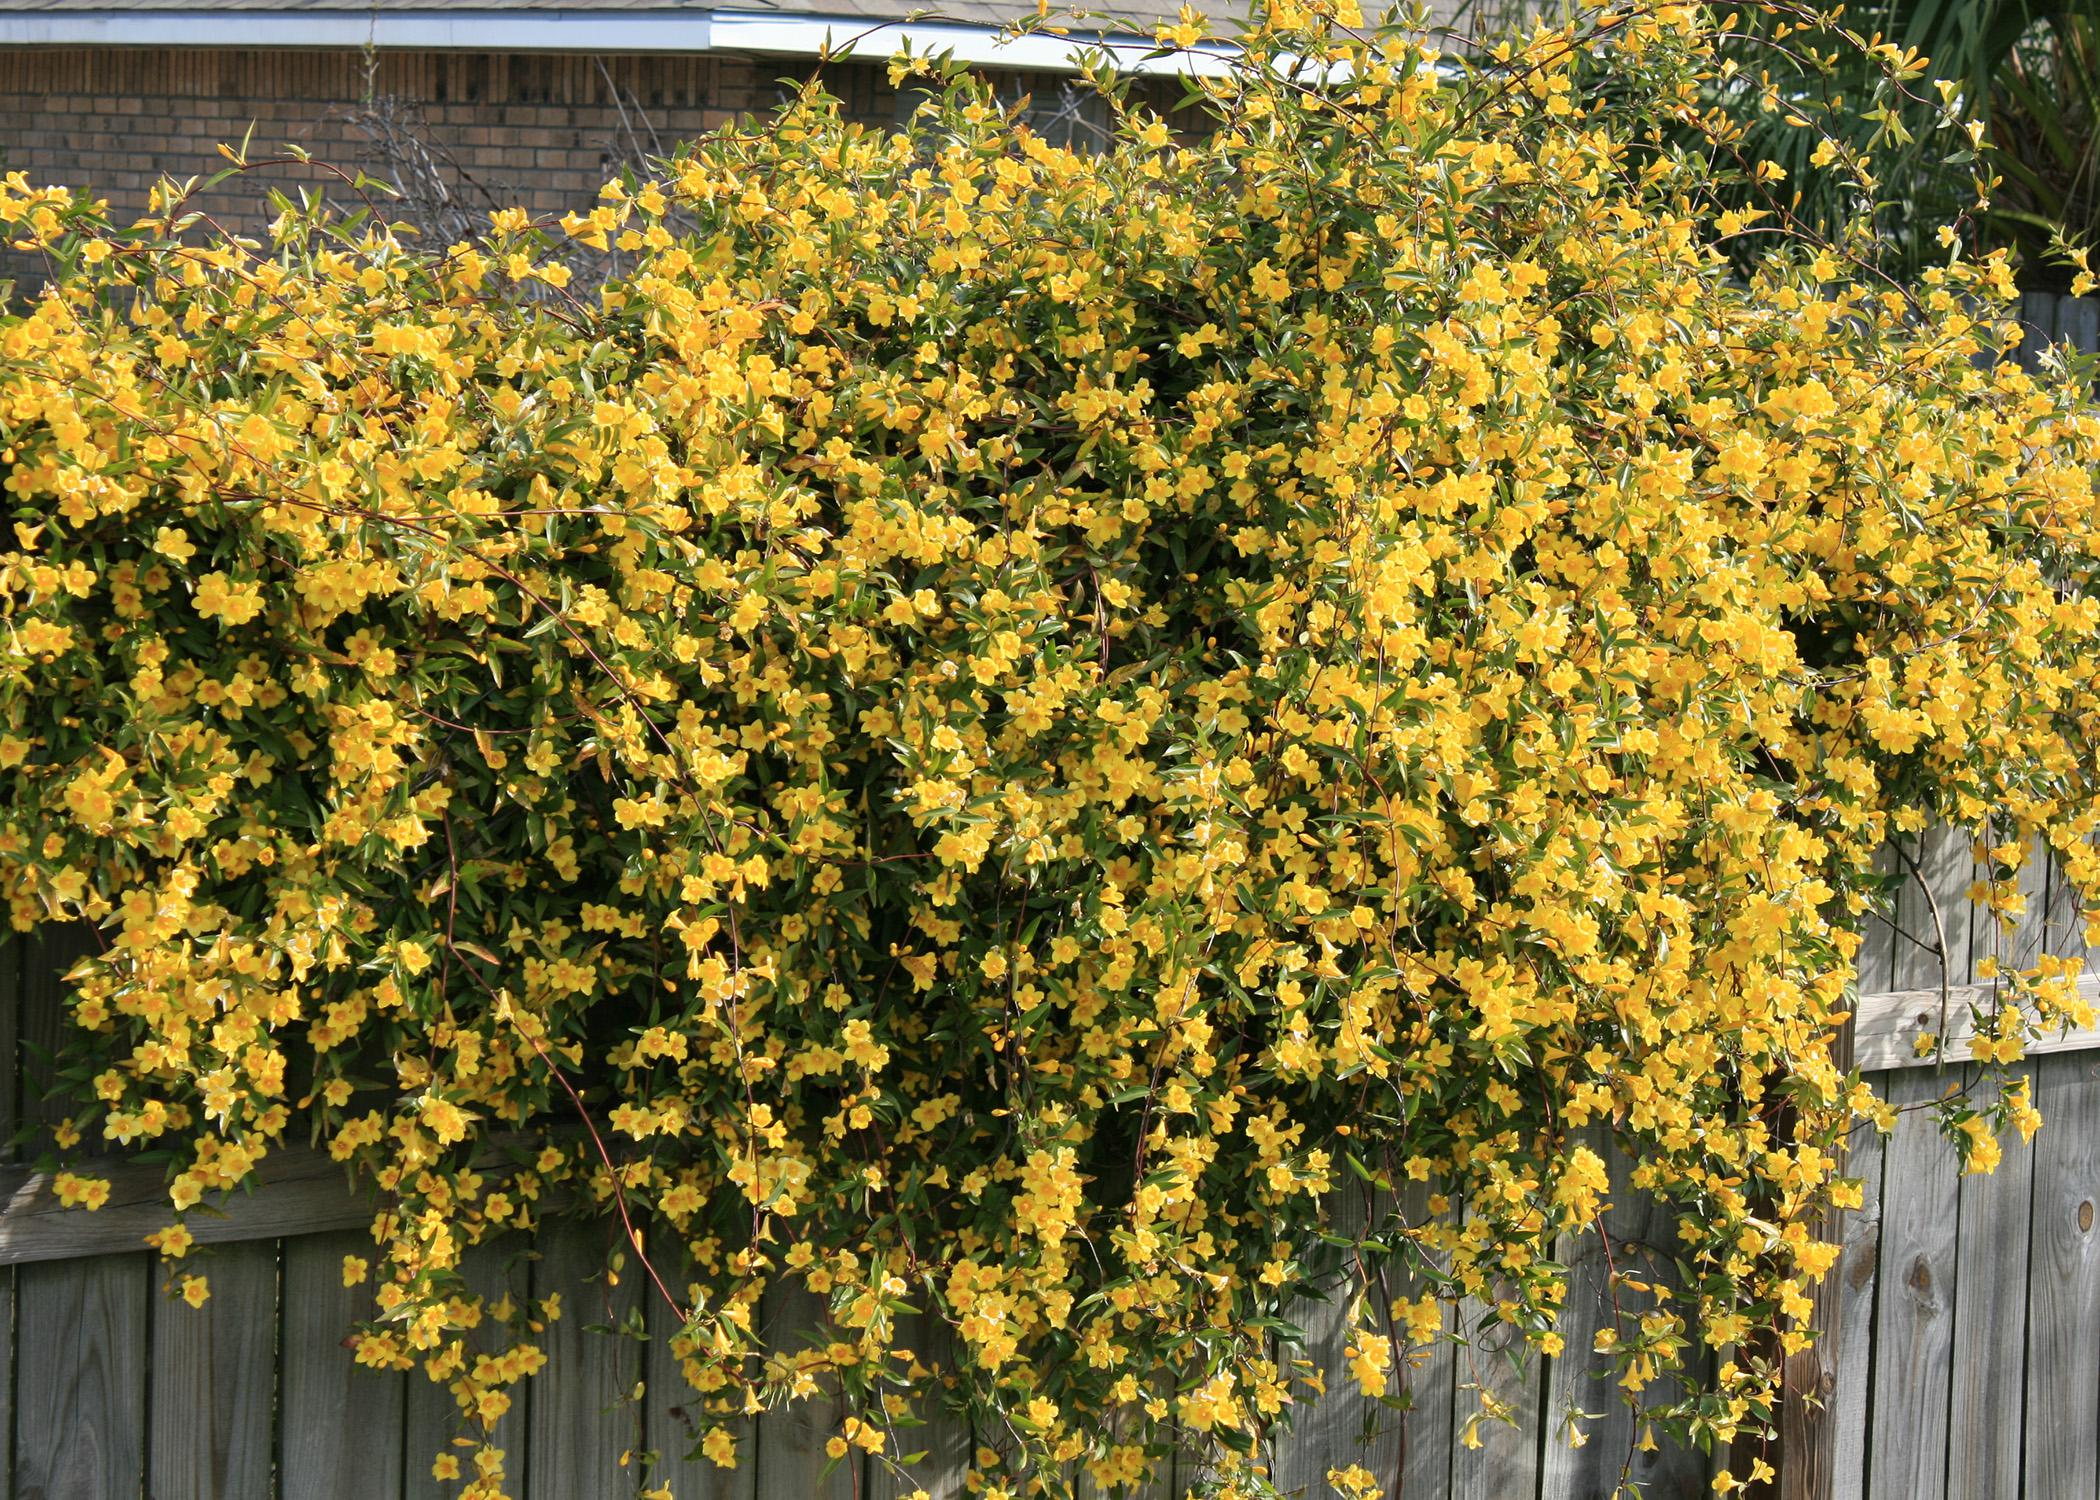 Plant flowering vines now for great show next spring mississippi native yellow jasmine or yellow jessamine adds one of the first touches of color izmirmasajfo